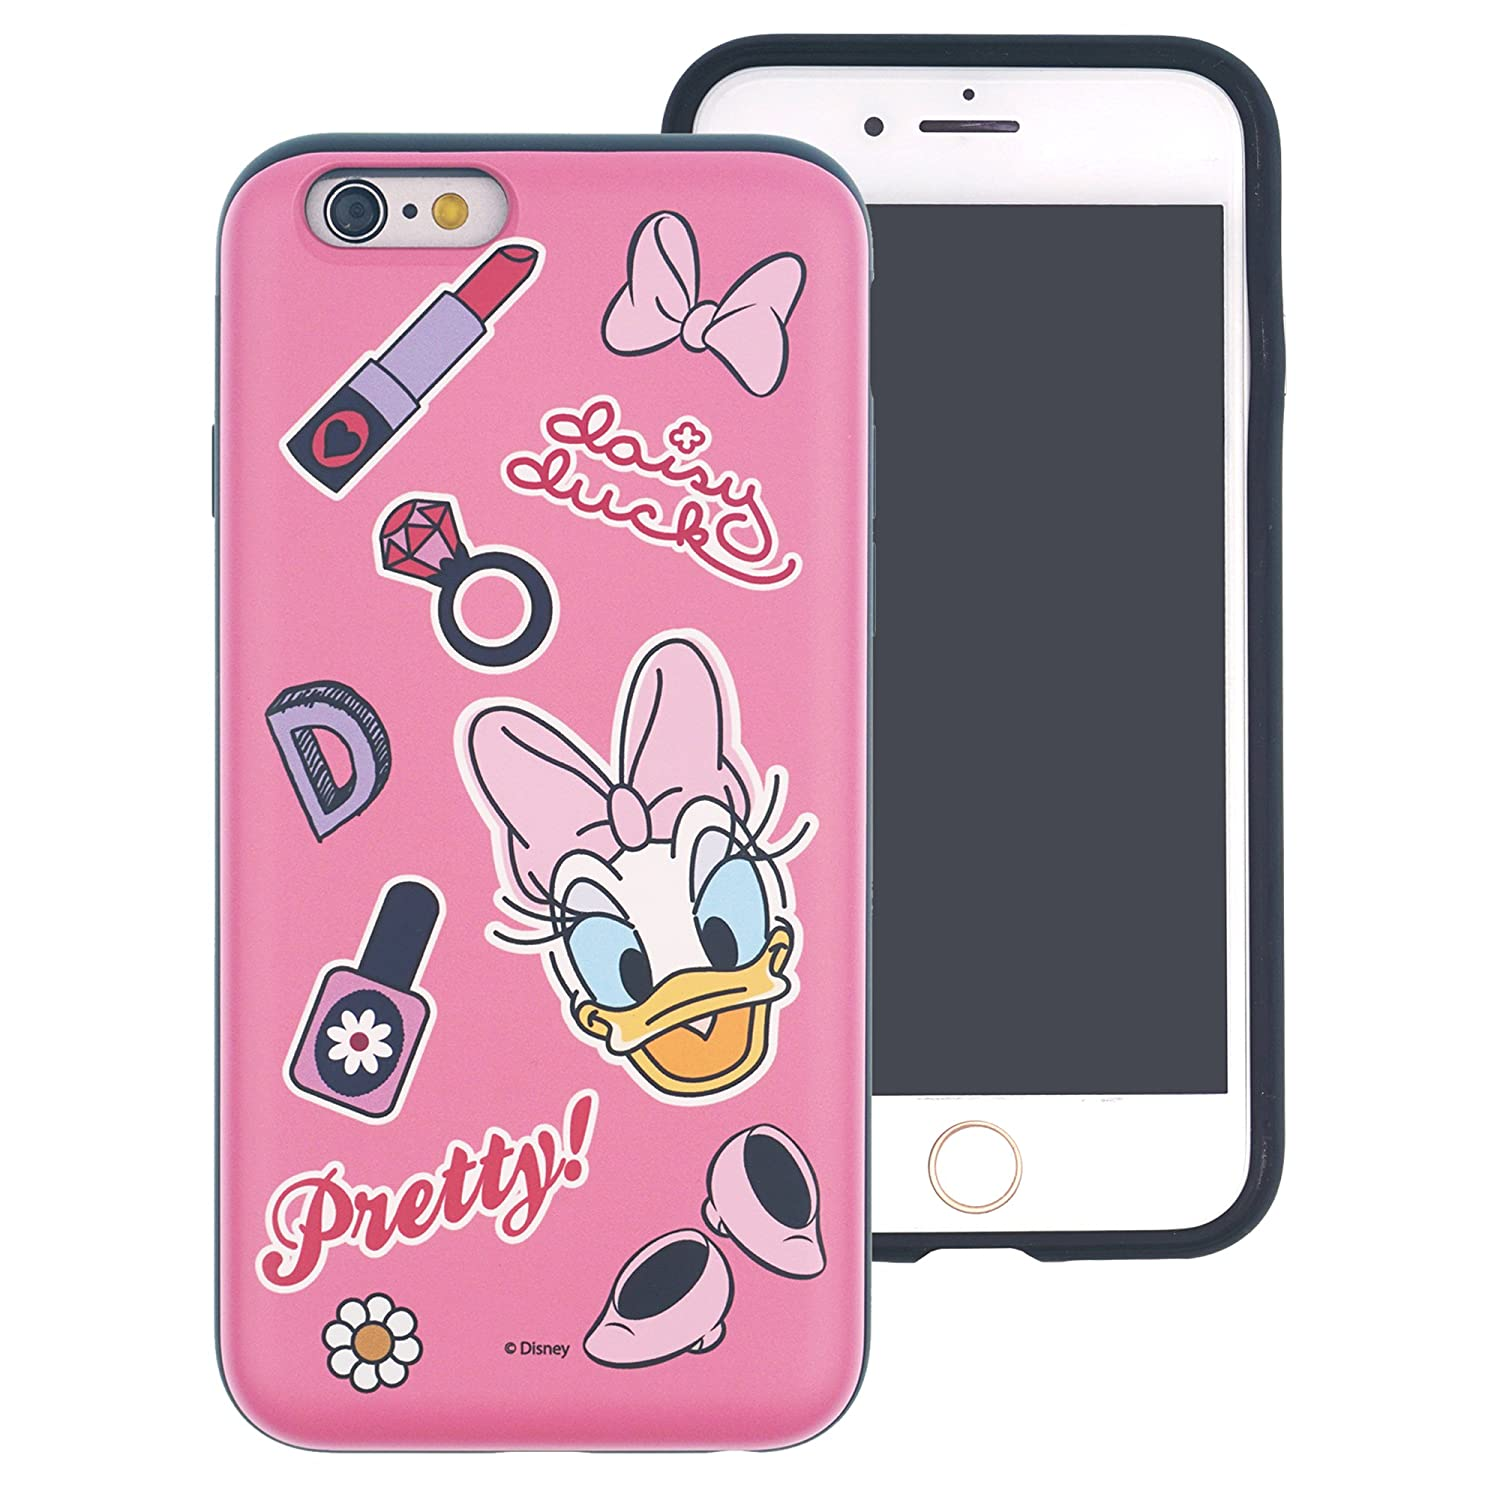 iPhone 8 / iPhone 7 Case, Disney Cute Layered Hybrid [TPU + PC] Bumper Cover [Shock Absorption] for iPhone8 / iPhone7 (4.7inch) - Vintage Couple WiLLBee